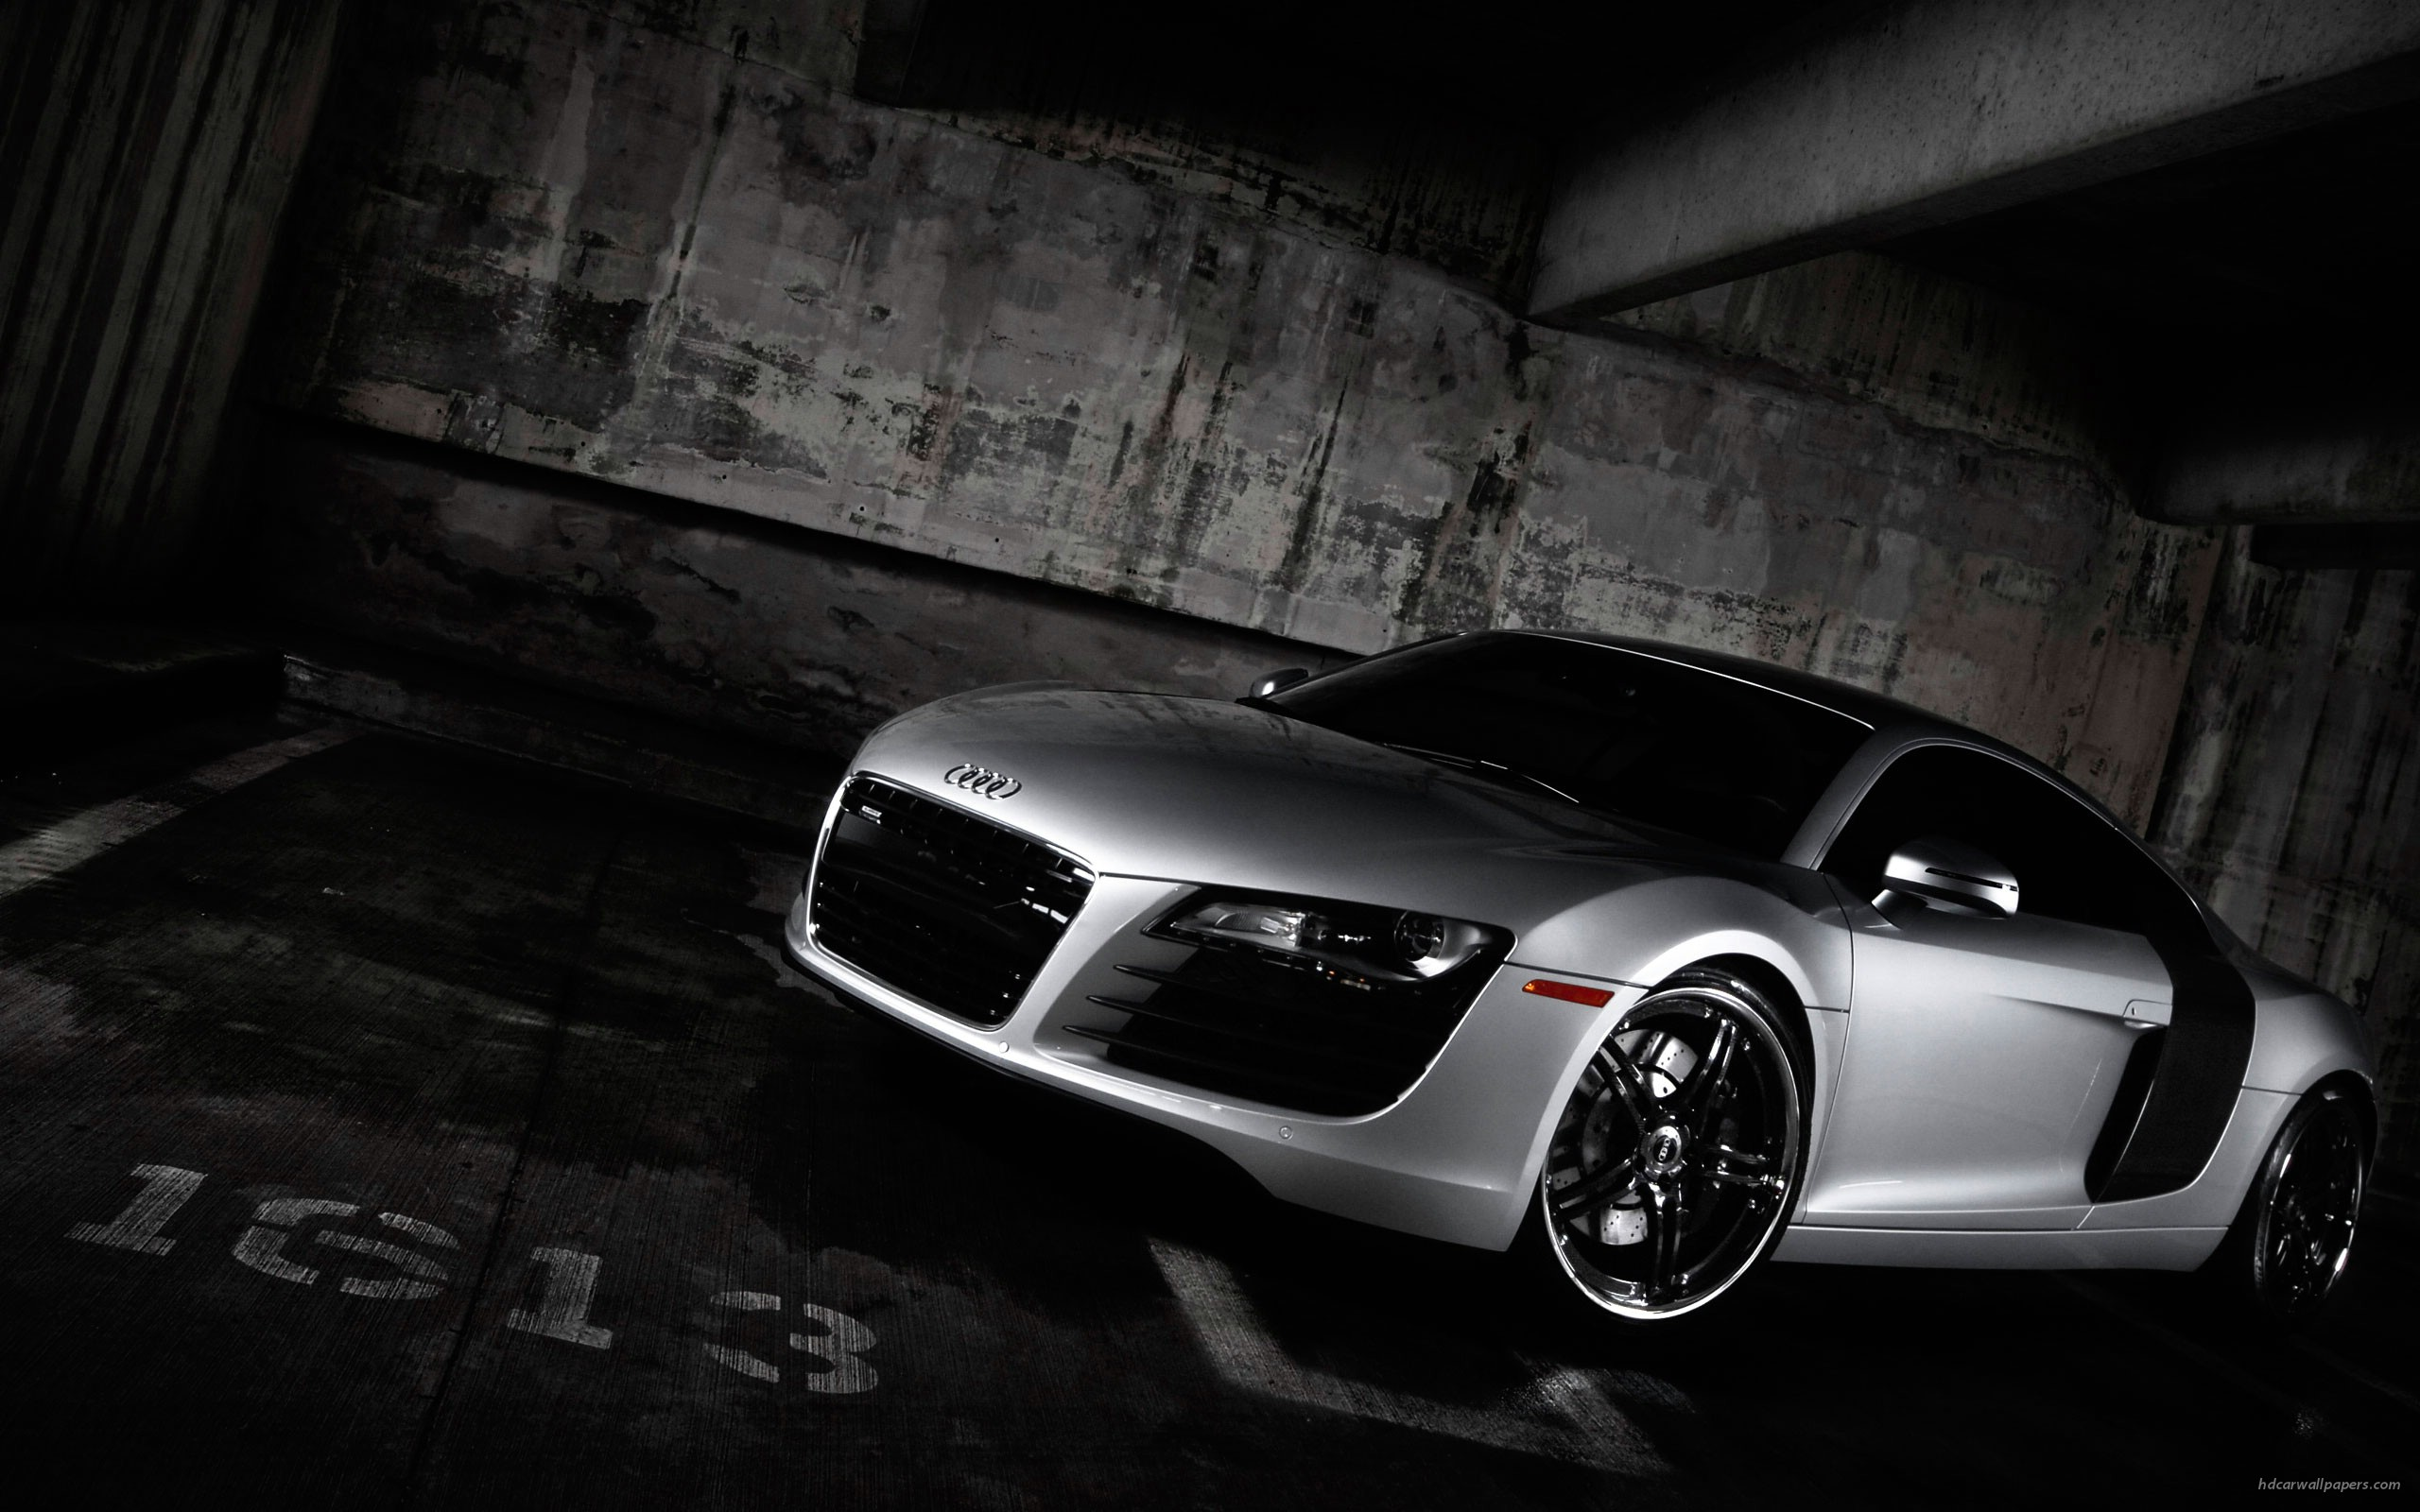 Audi R8 HD Widescreen Wallpapers HD Wallpapers 2560x1600